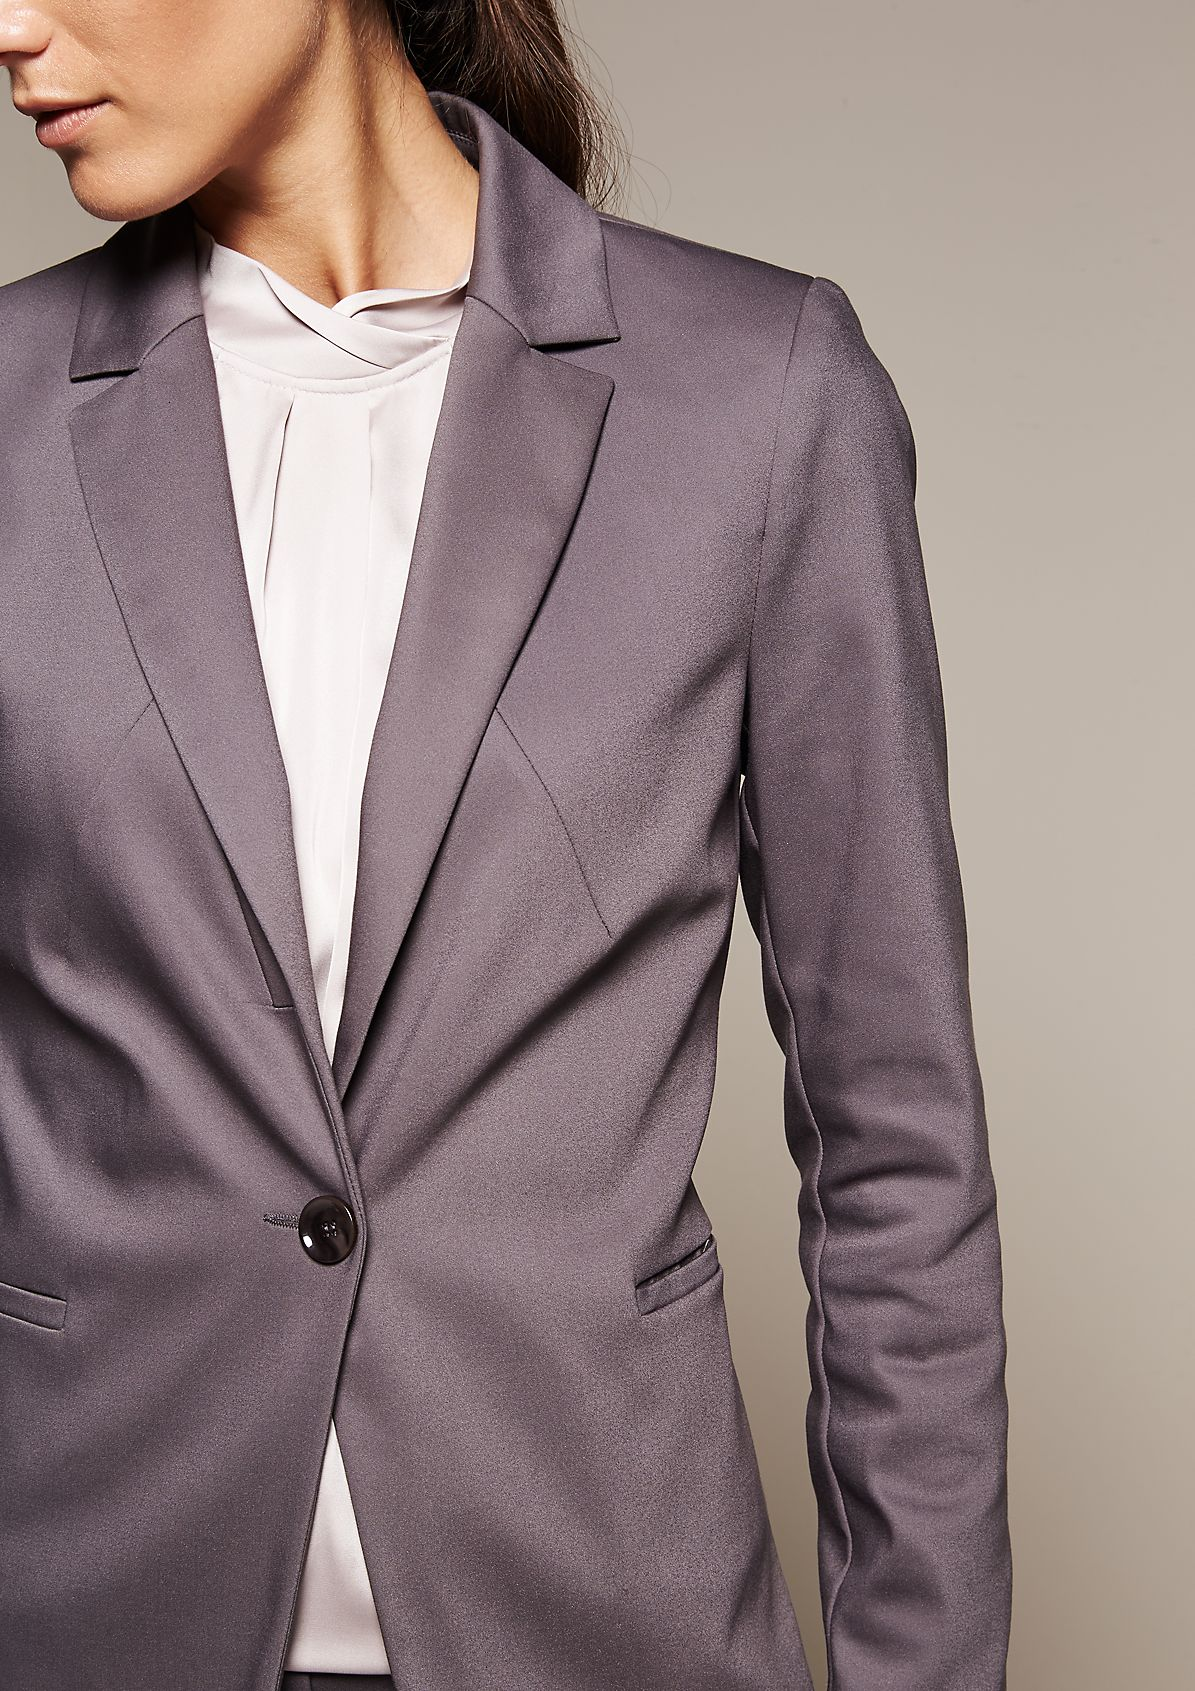 Smart blazer with beautiful details from comma